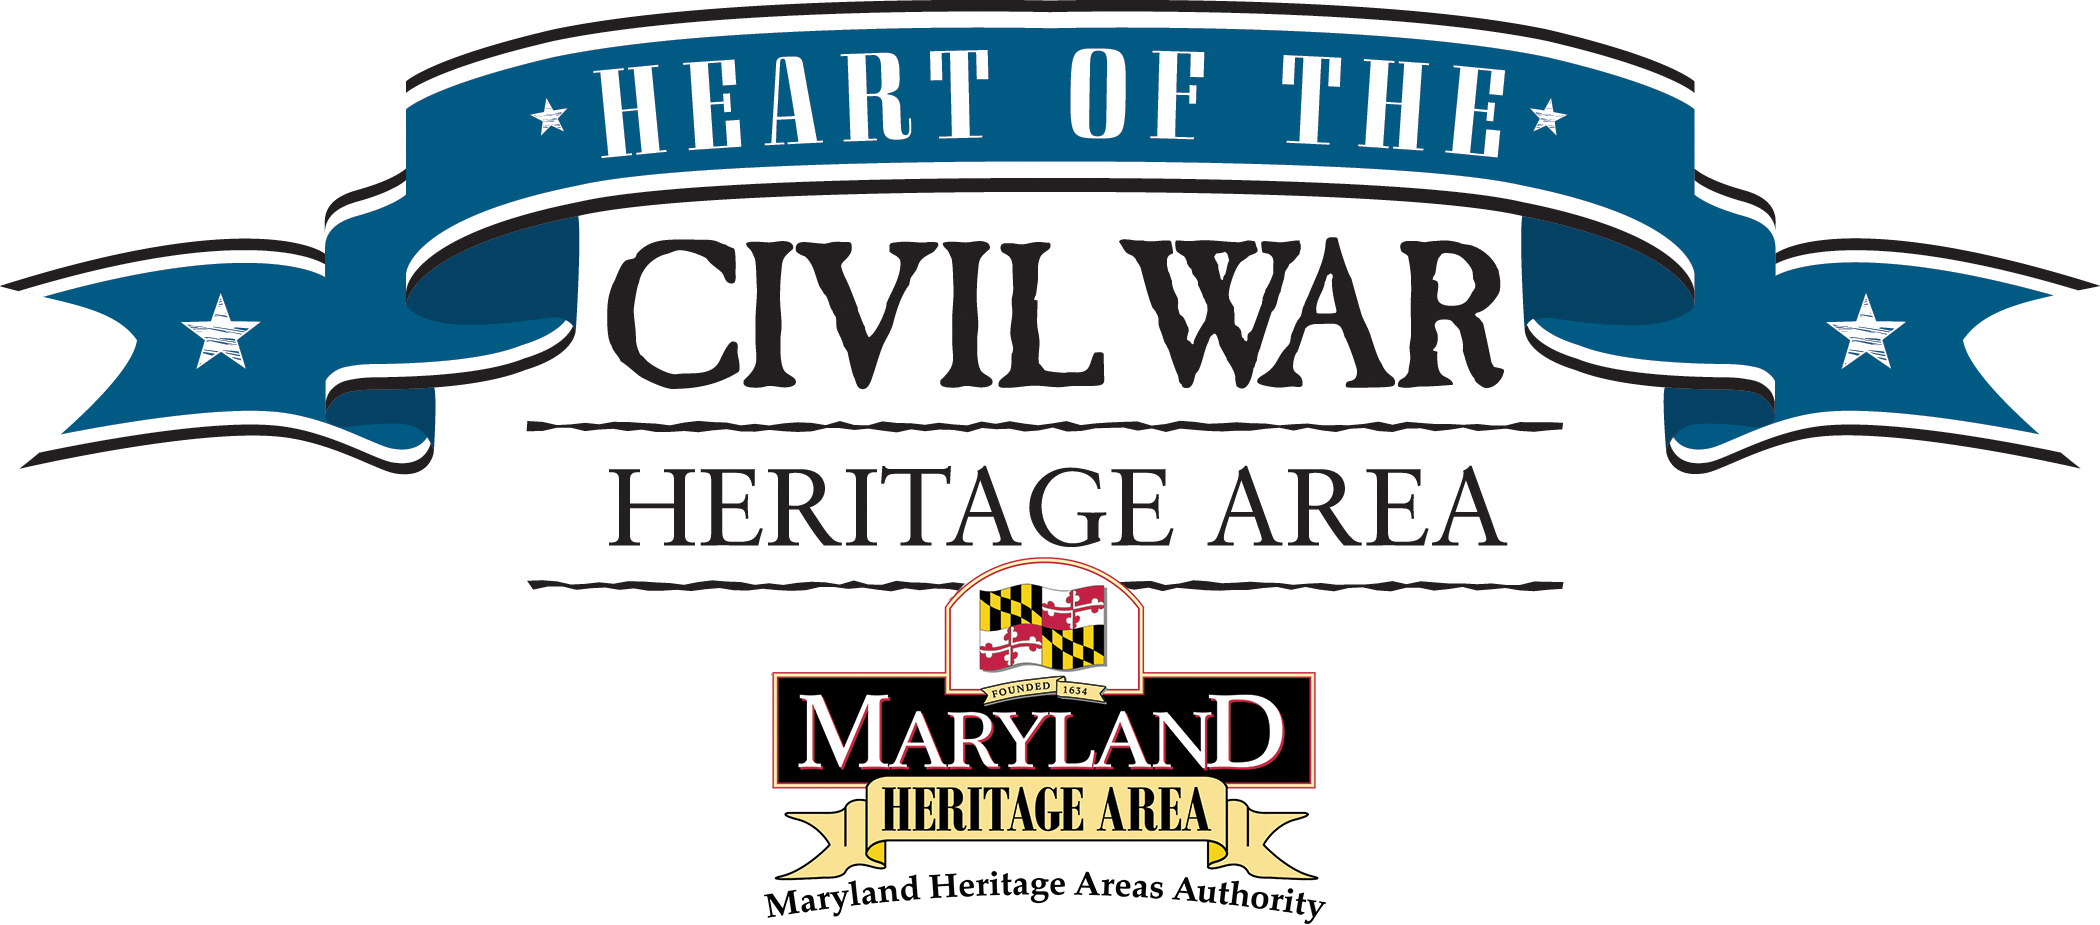 Heart of the Civil War Heritage Area